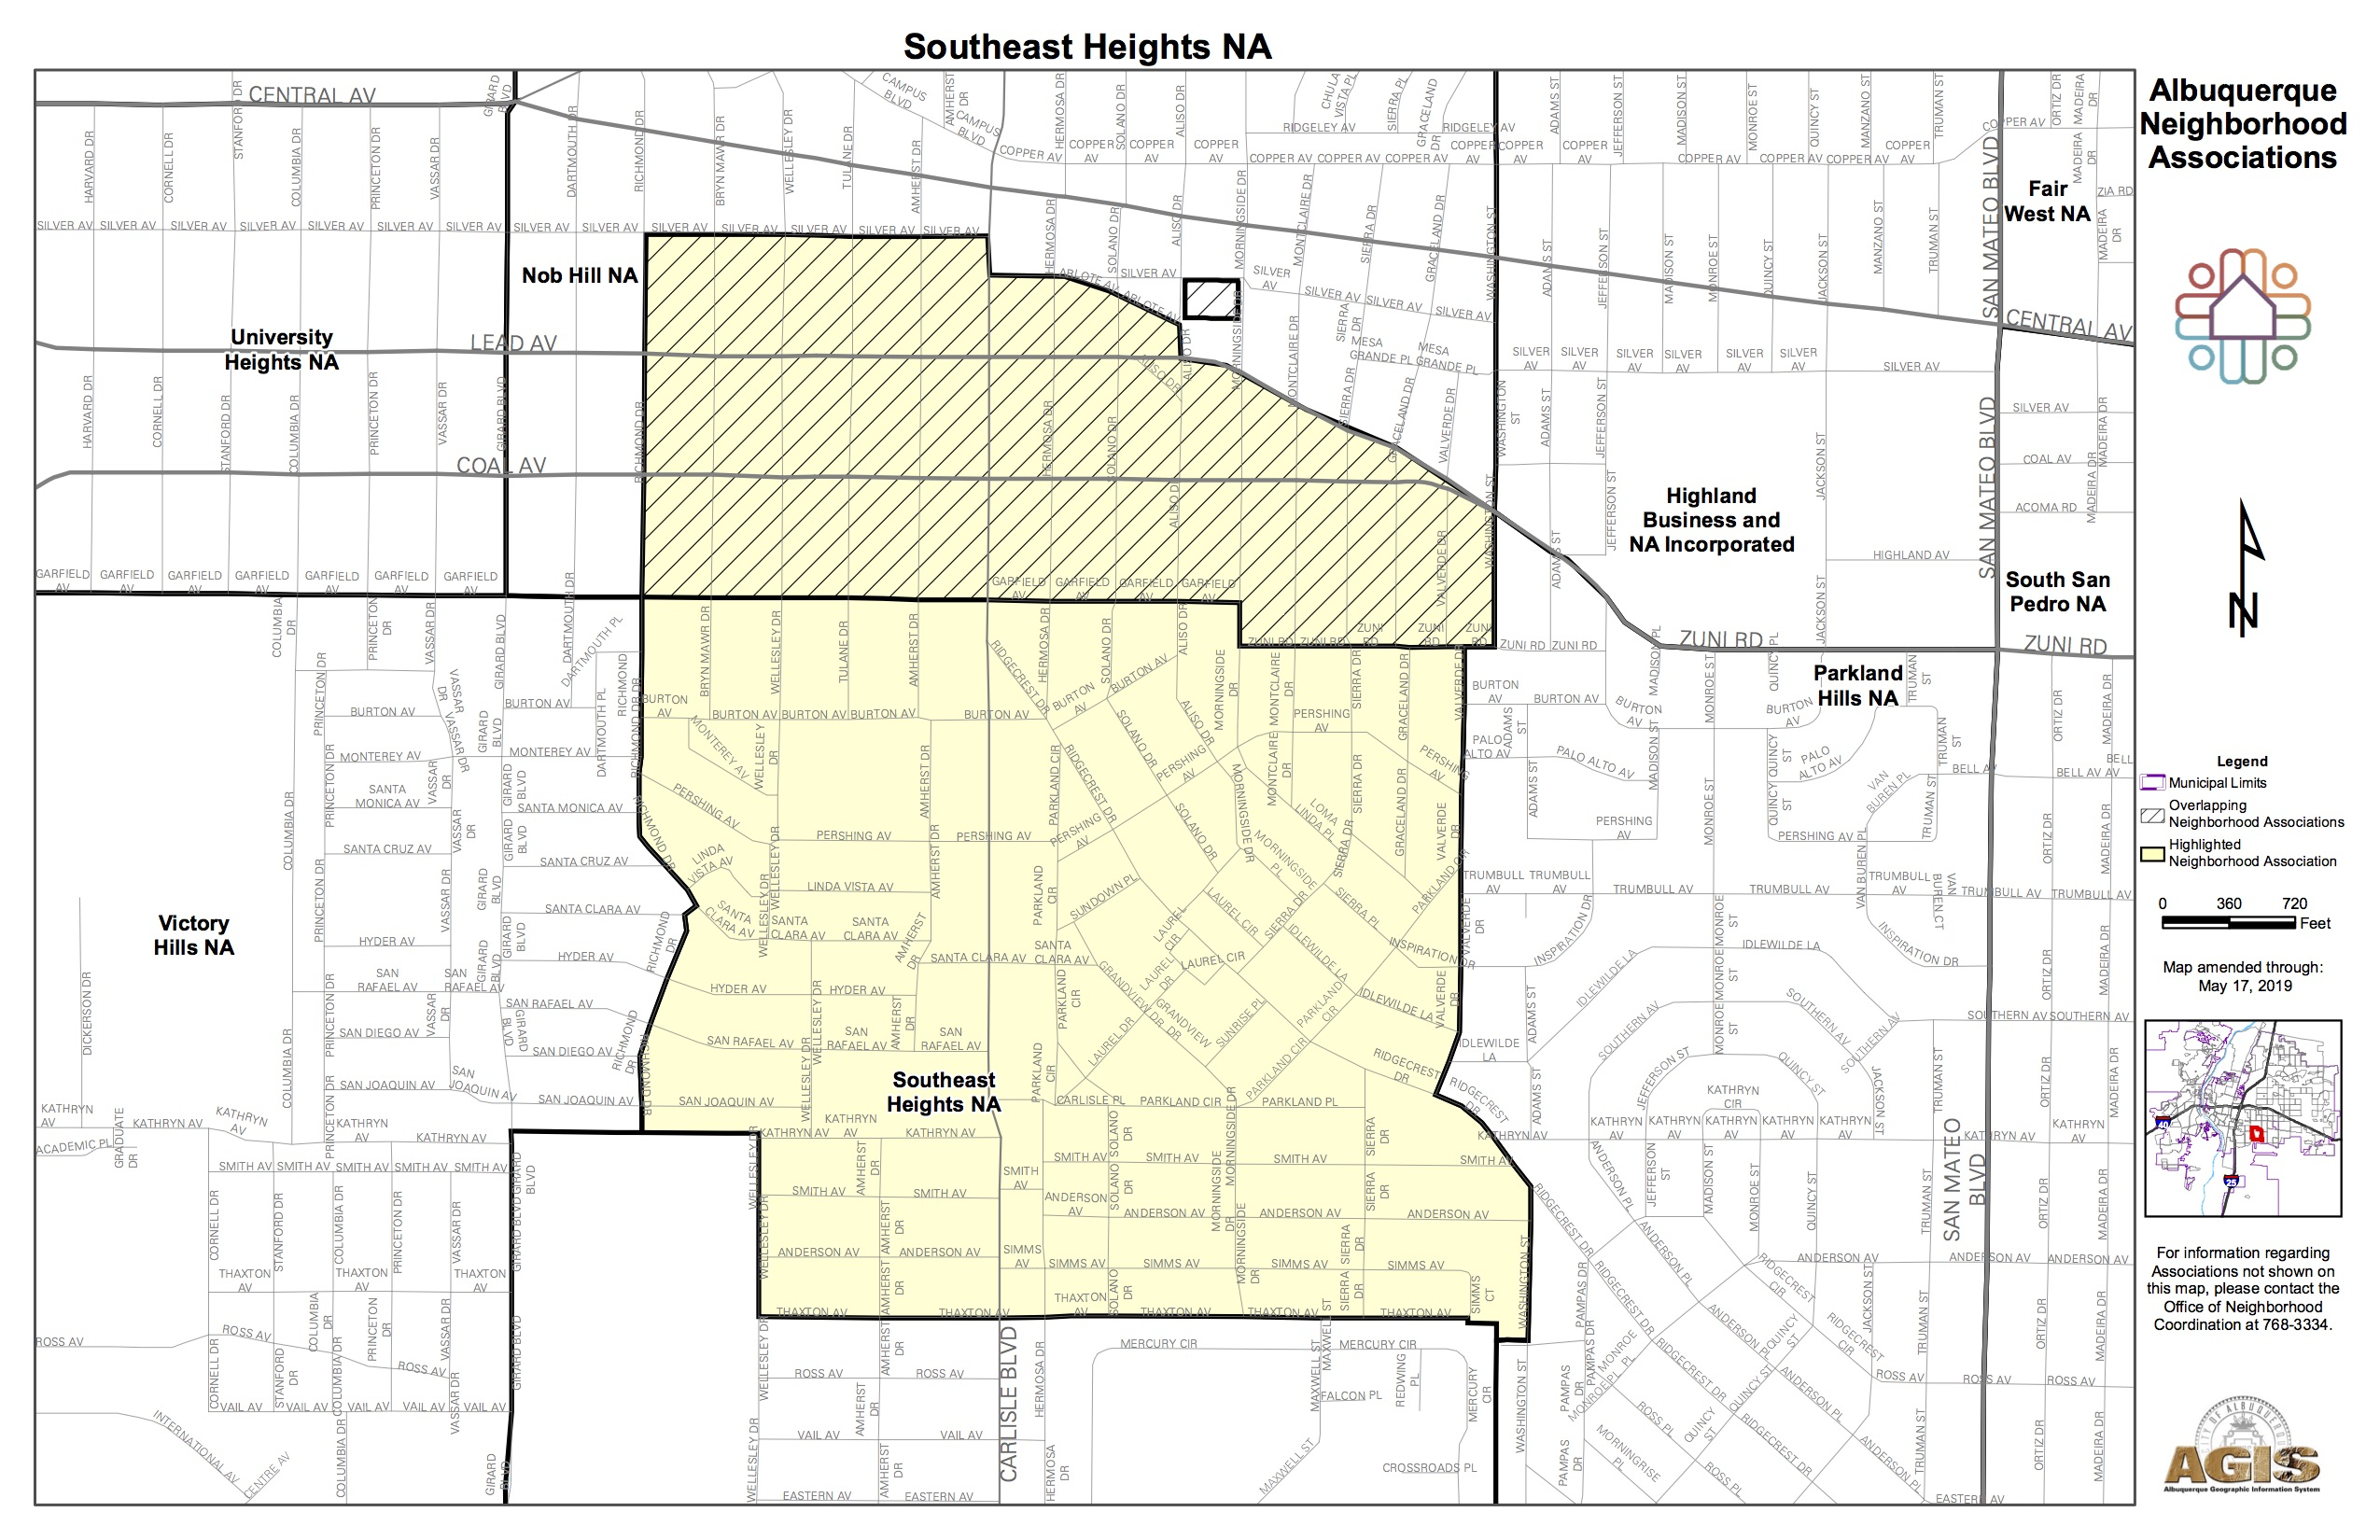 Adjacent Nob Hill Neighborhood Association Southeast Heights Map